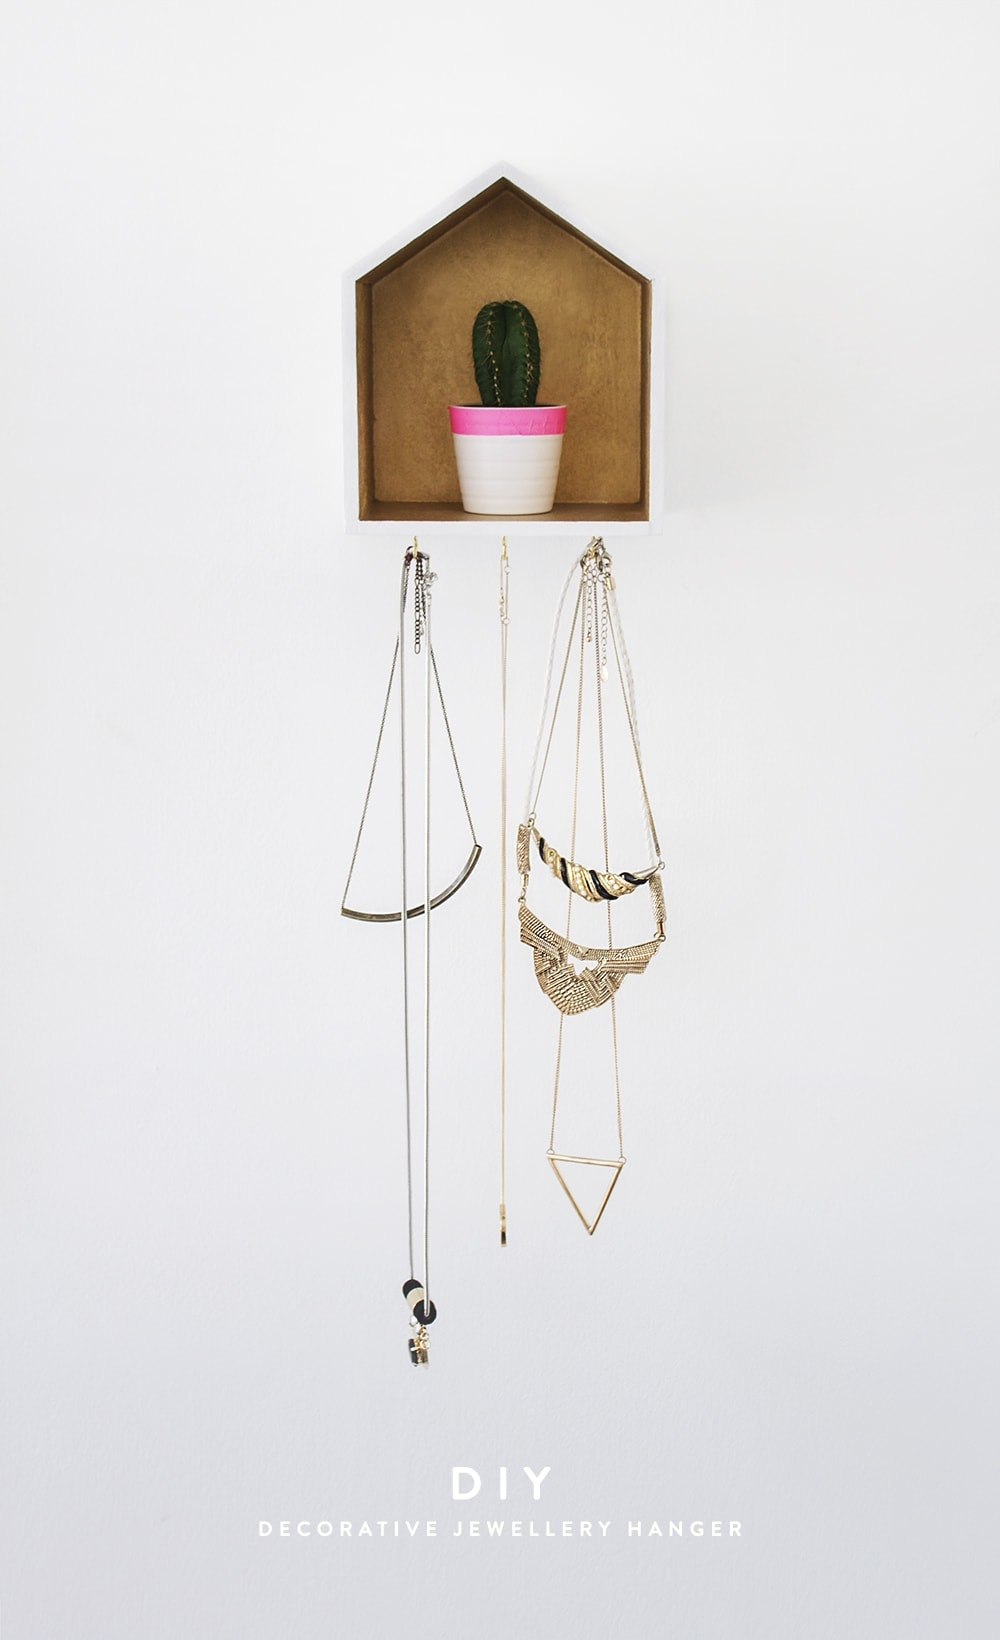 DIY decorative jewellery hanger 1